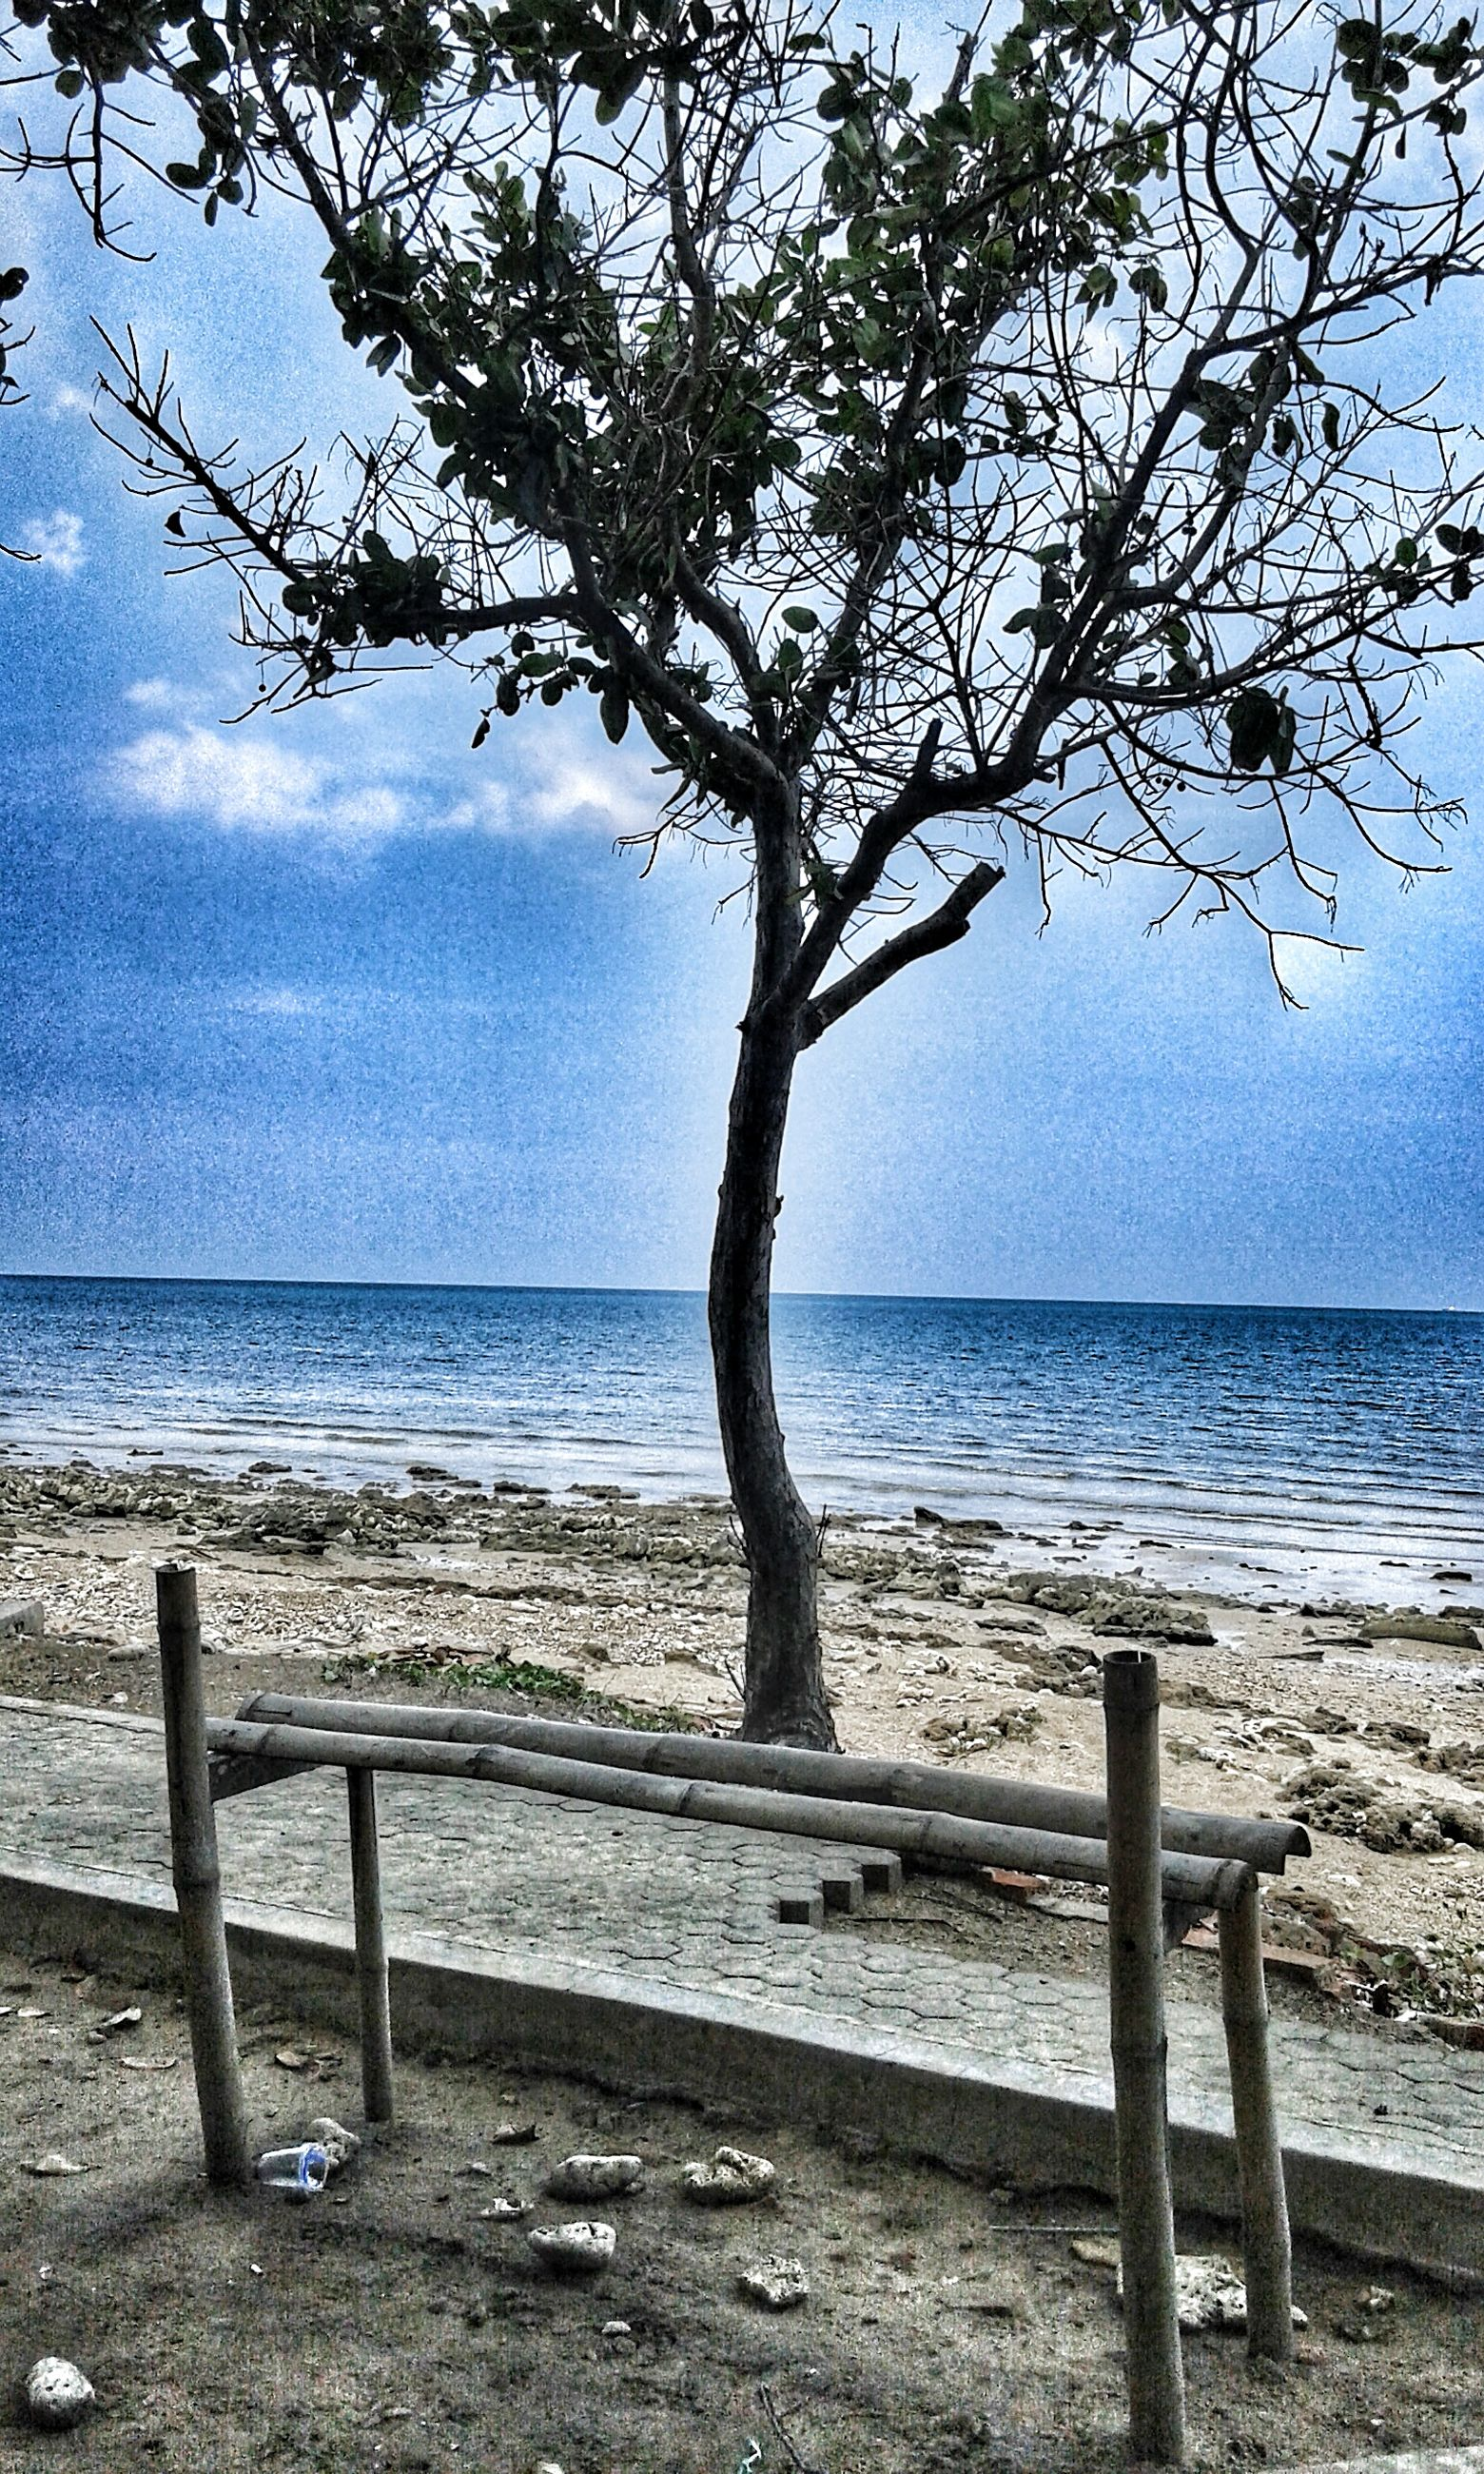 horizon over water, sea, tranquility, water, tranquil scene, scenics, beach, beauty in nature, sky, tree, shore, nature, branch, tree trunk, idyllic, sand, remote, calm, outdoors, non-urban scene